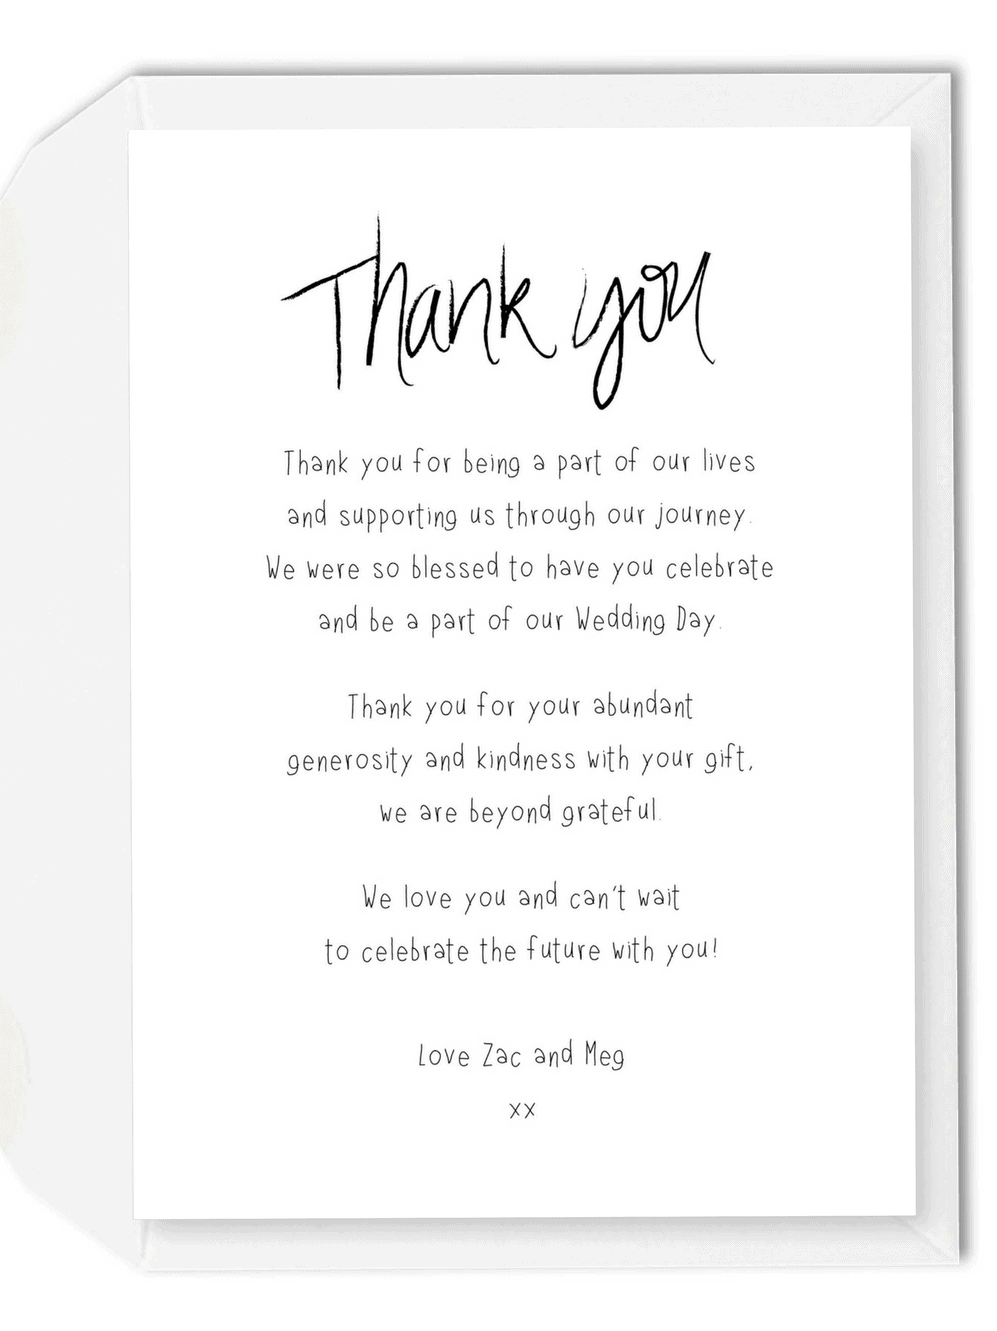 5 wording ideas for your wedding thank you cards for the love of wedding thank you card wording ideas 2 junglespirit Gallery